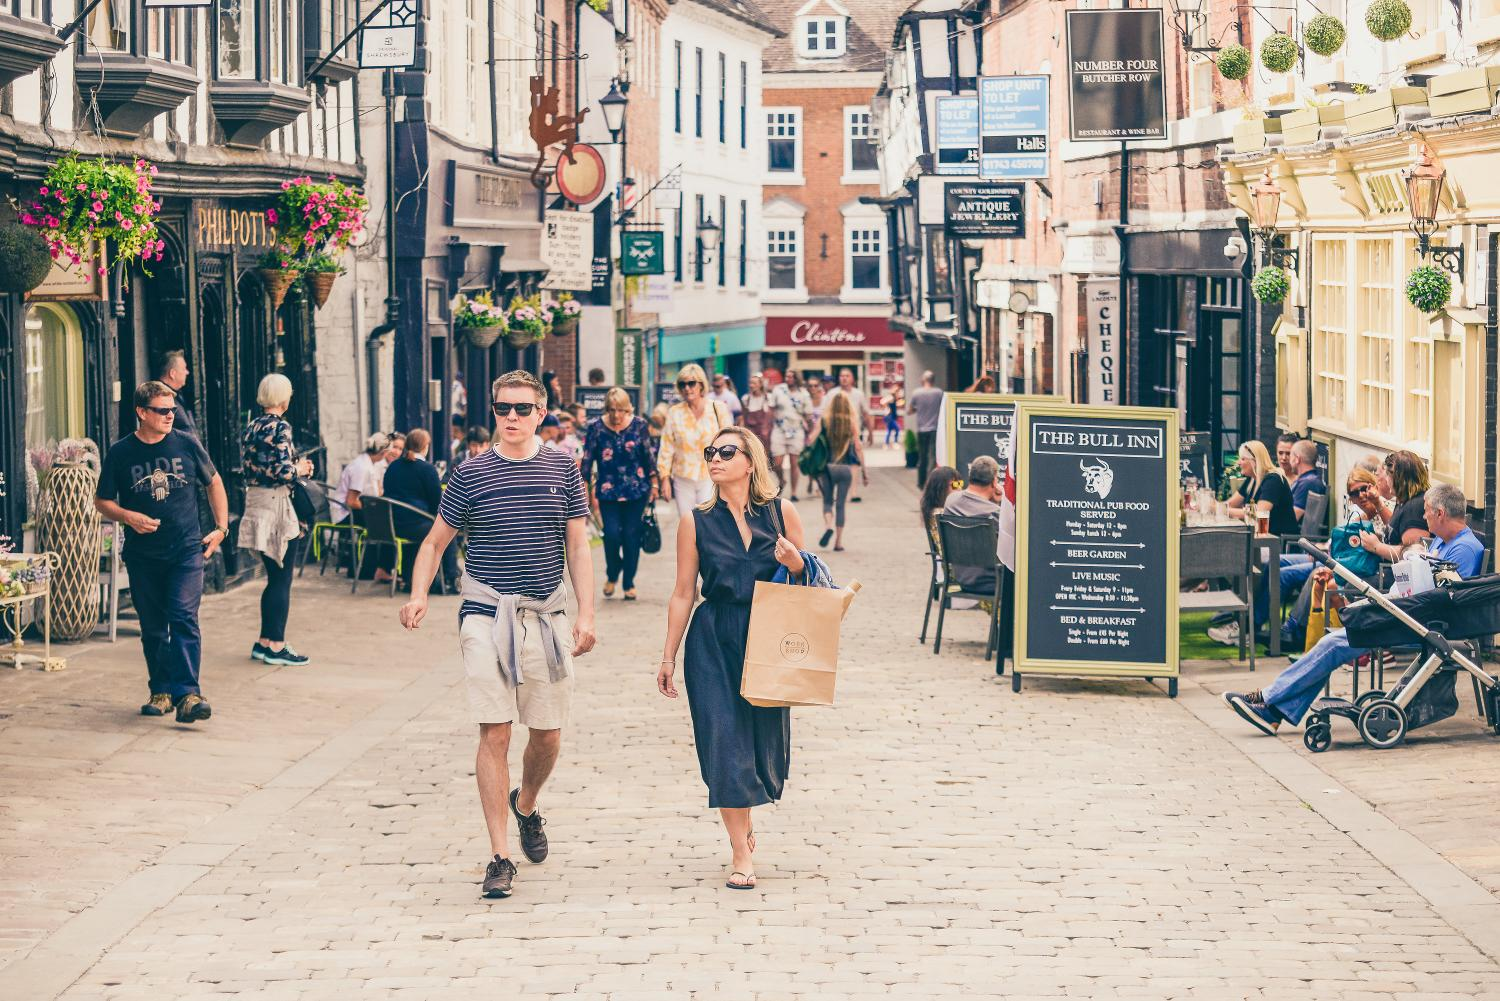 Shrewsbury named as one of Britain's healthiest high streets